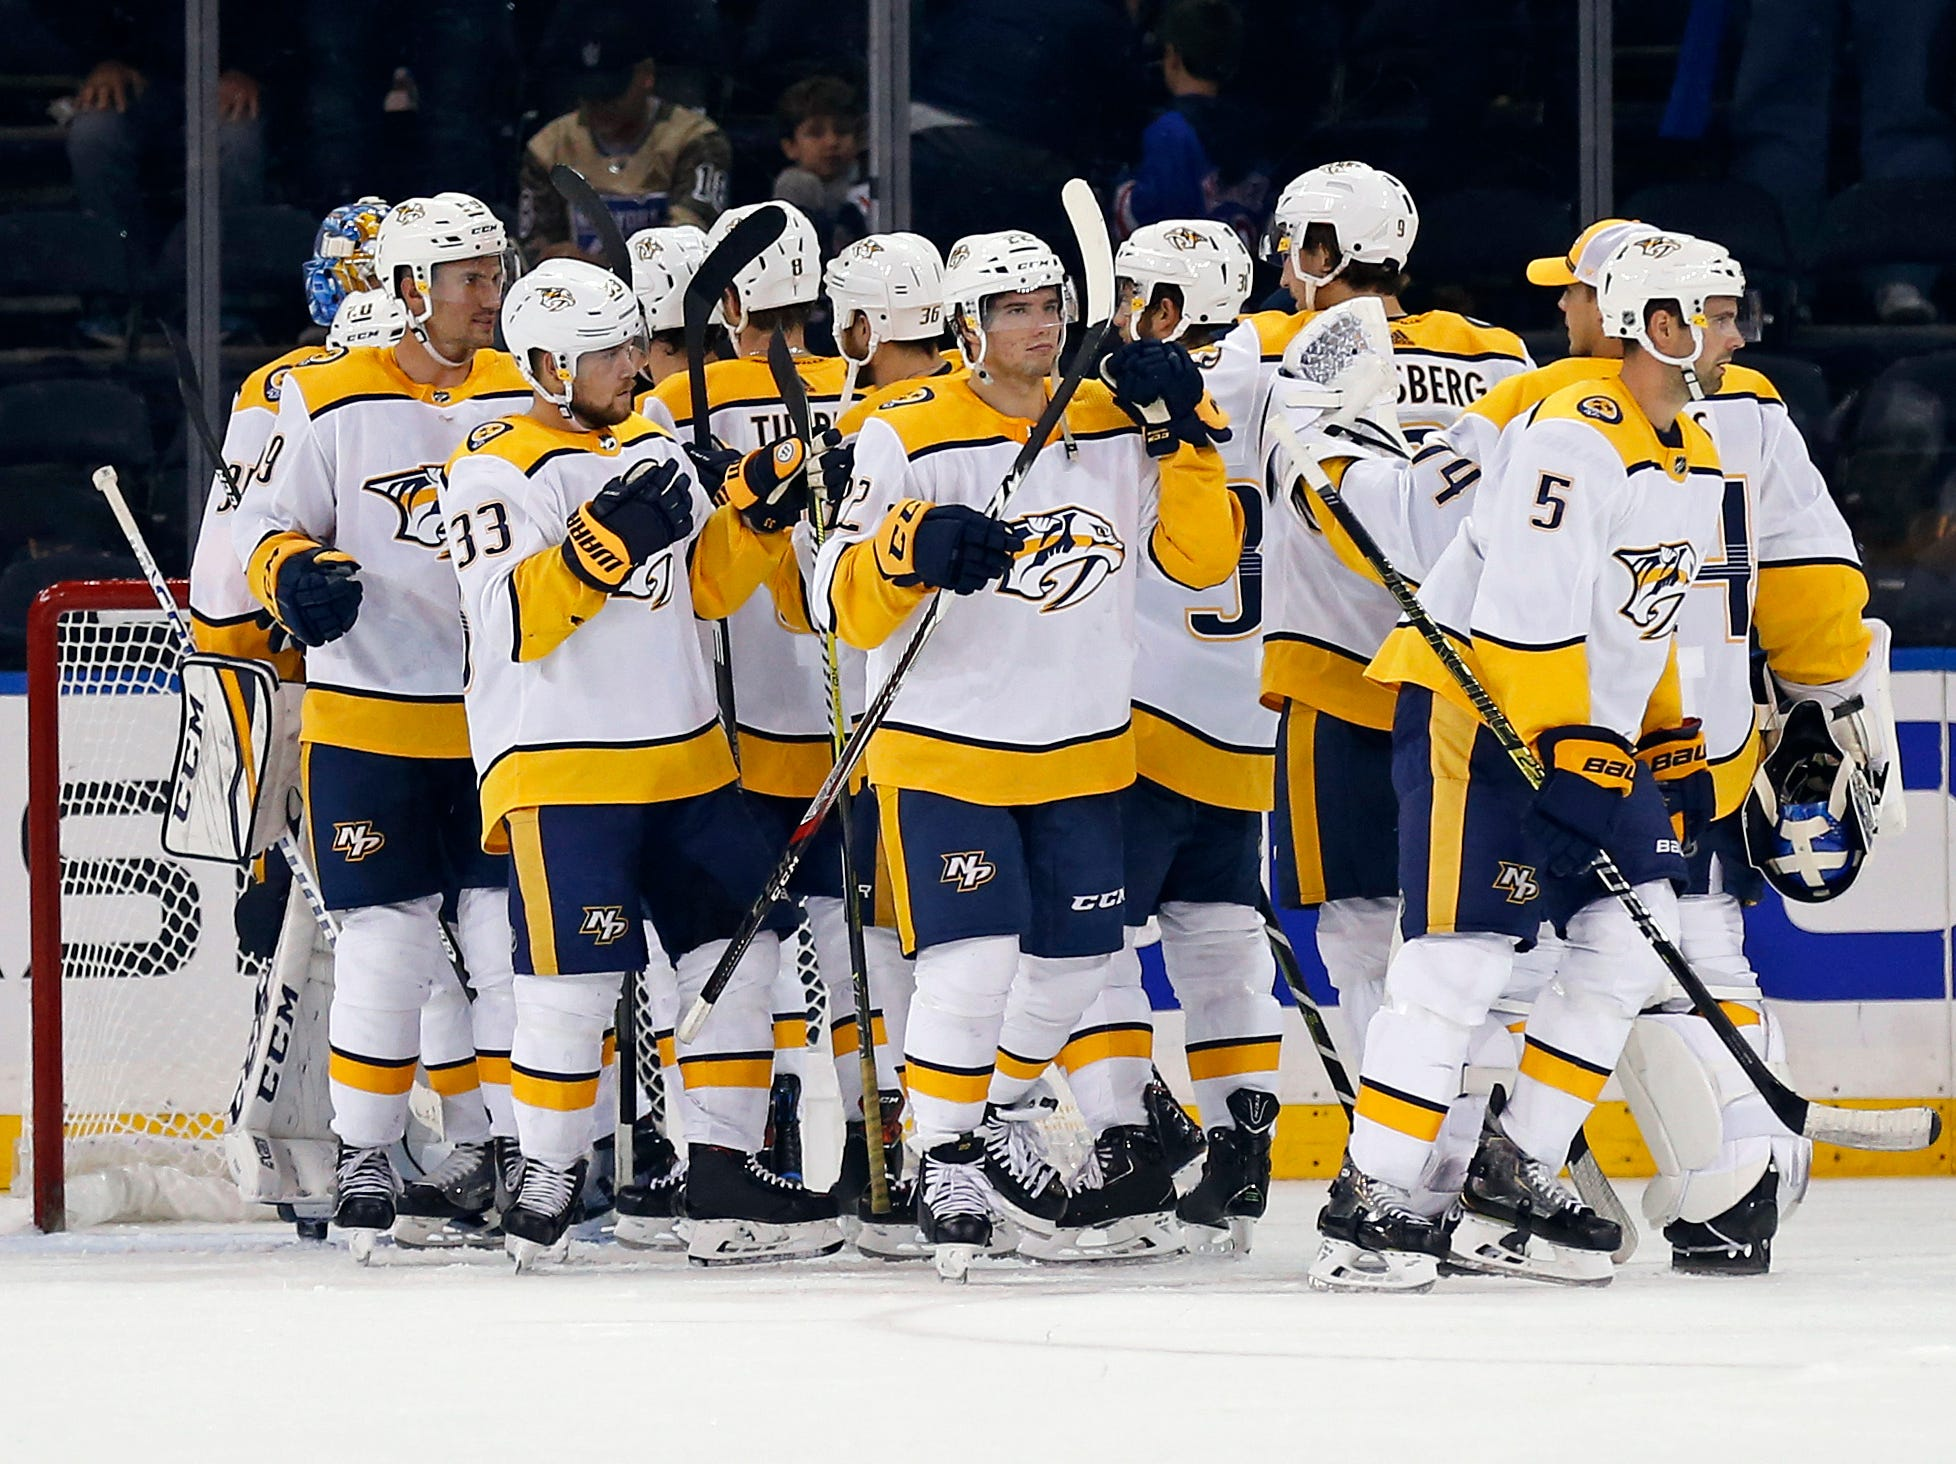 Oct 4, 2018, Predators 3, Rangers 2:  The Nashville Predators celebrate after defeating the New York Rangers at Madison Square Garden.